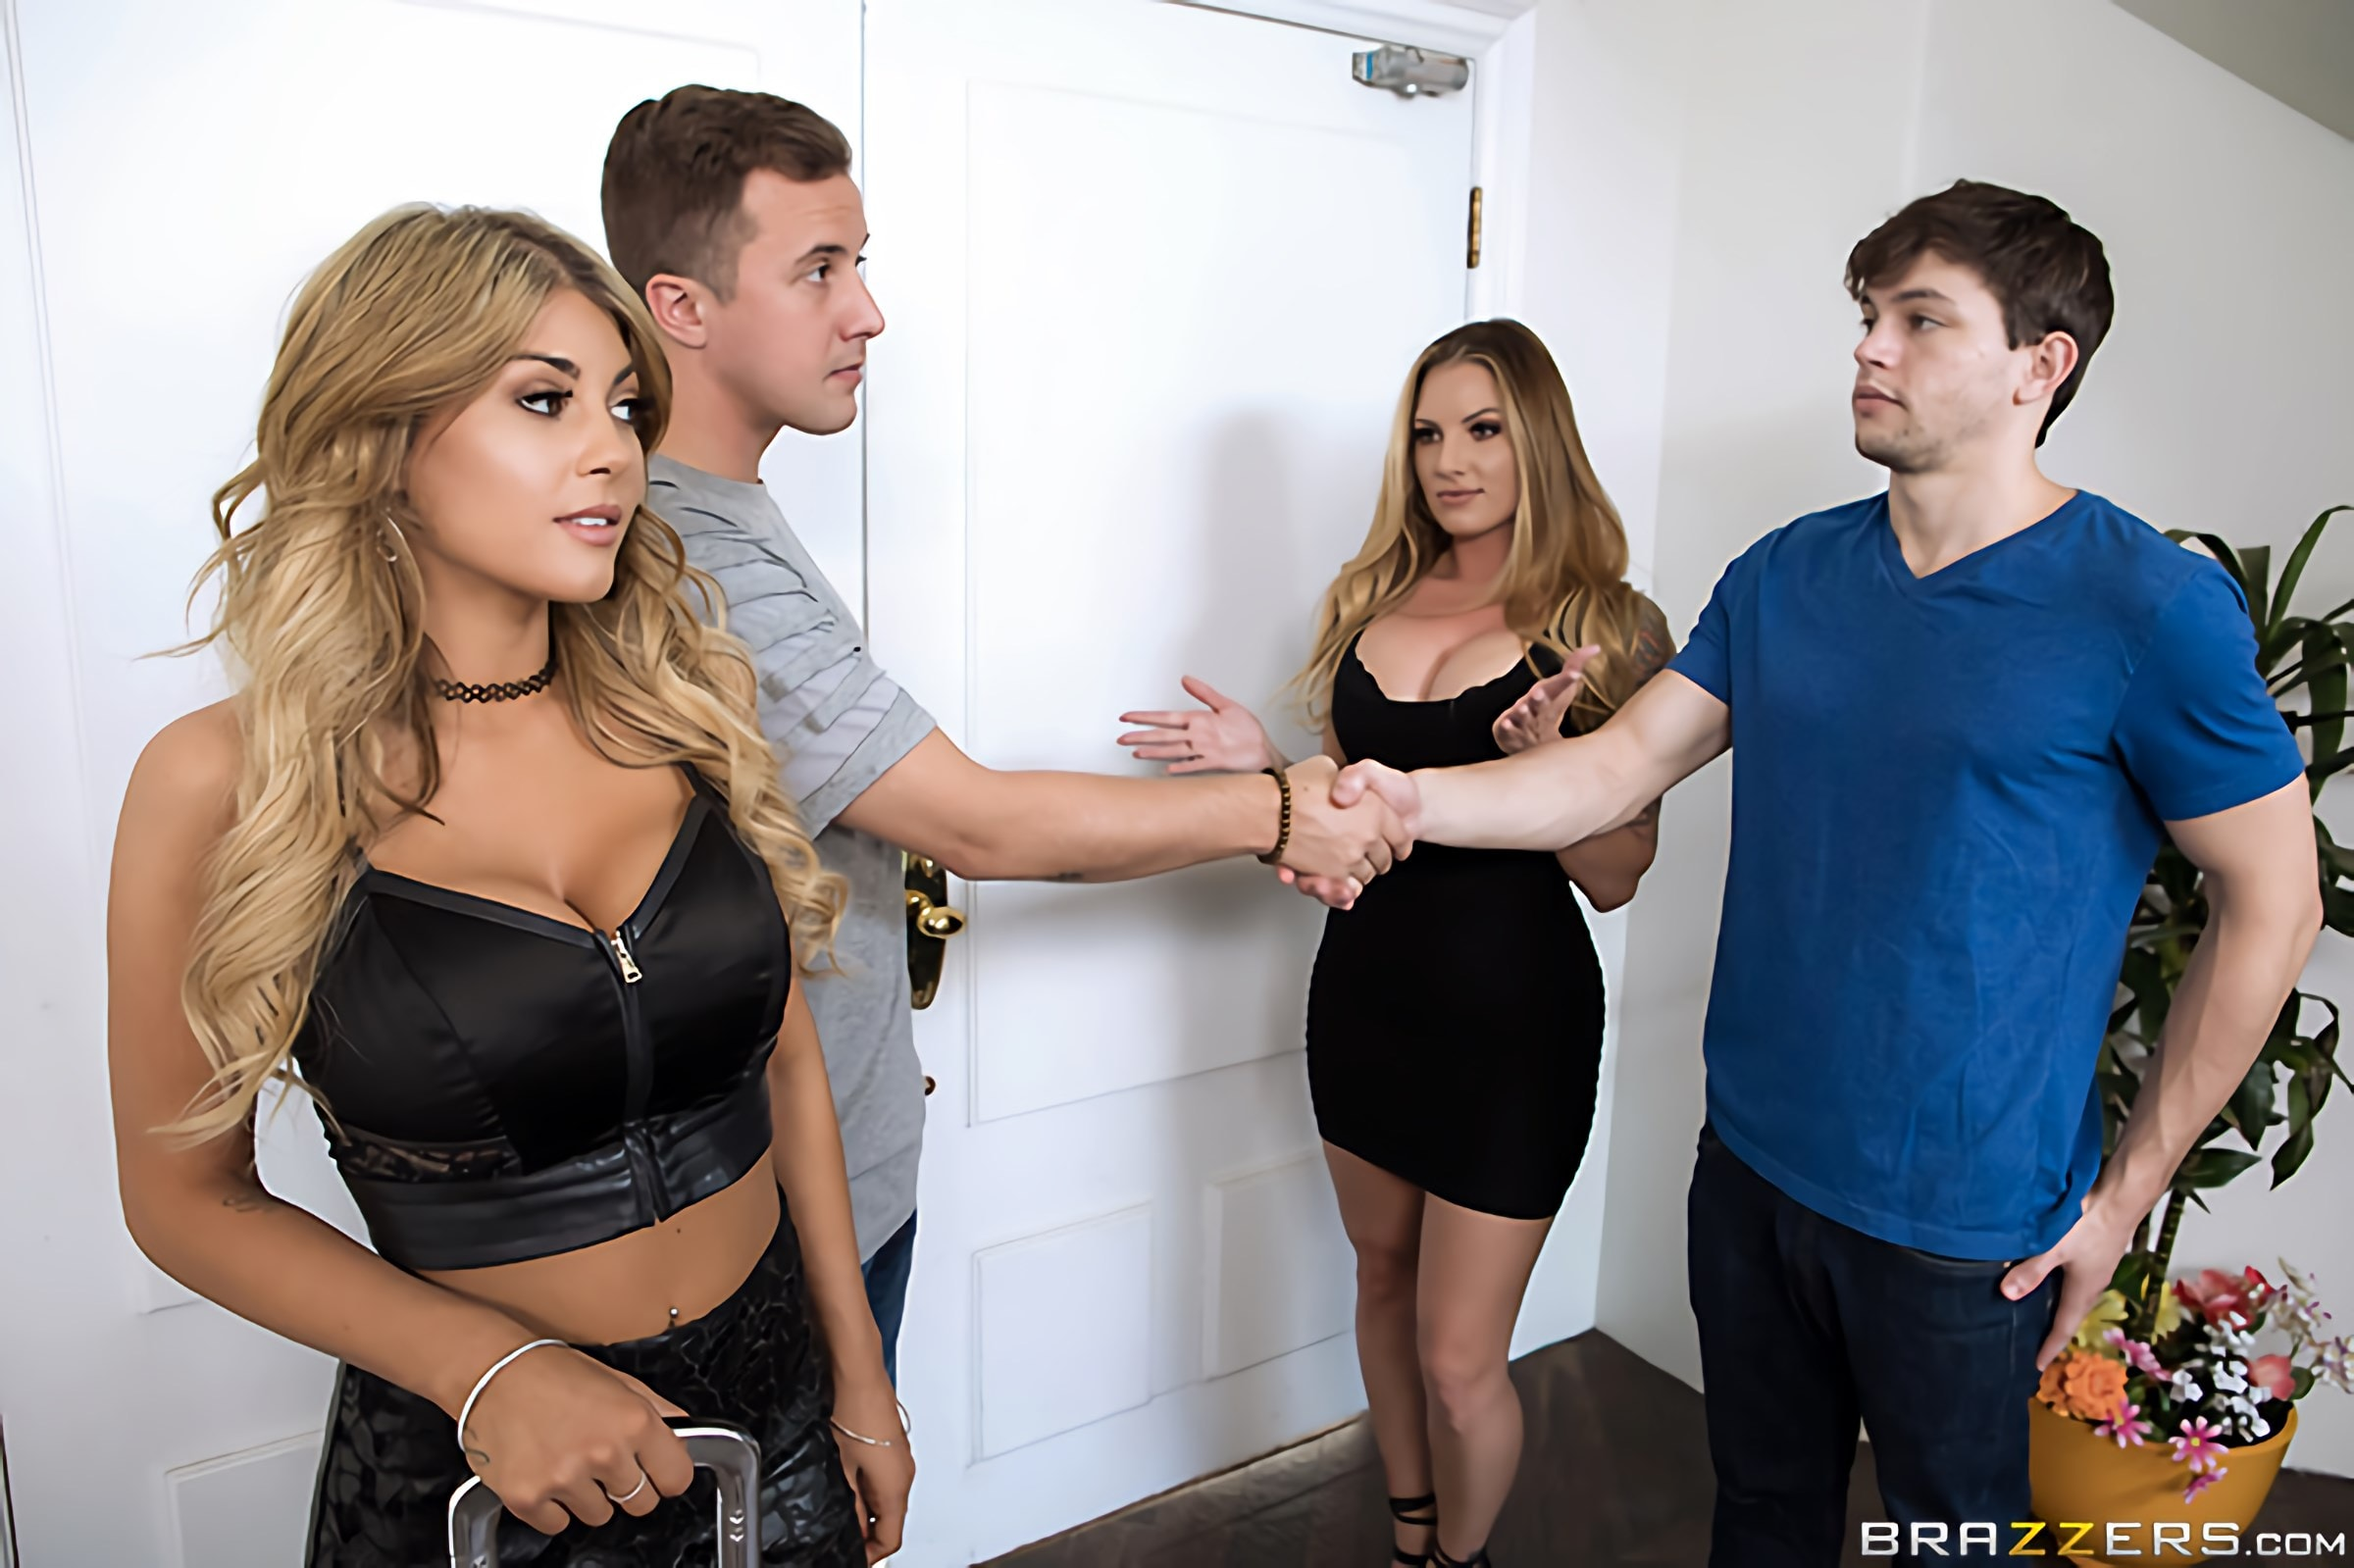 Brazzers 'Sister Swap: Part 1' starring Kayla Kayden (photo 1)